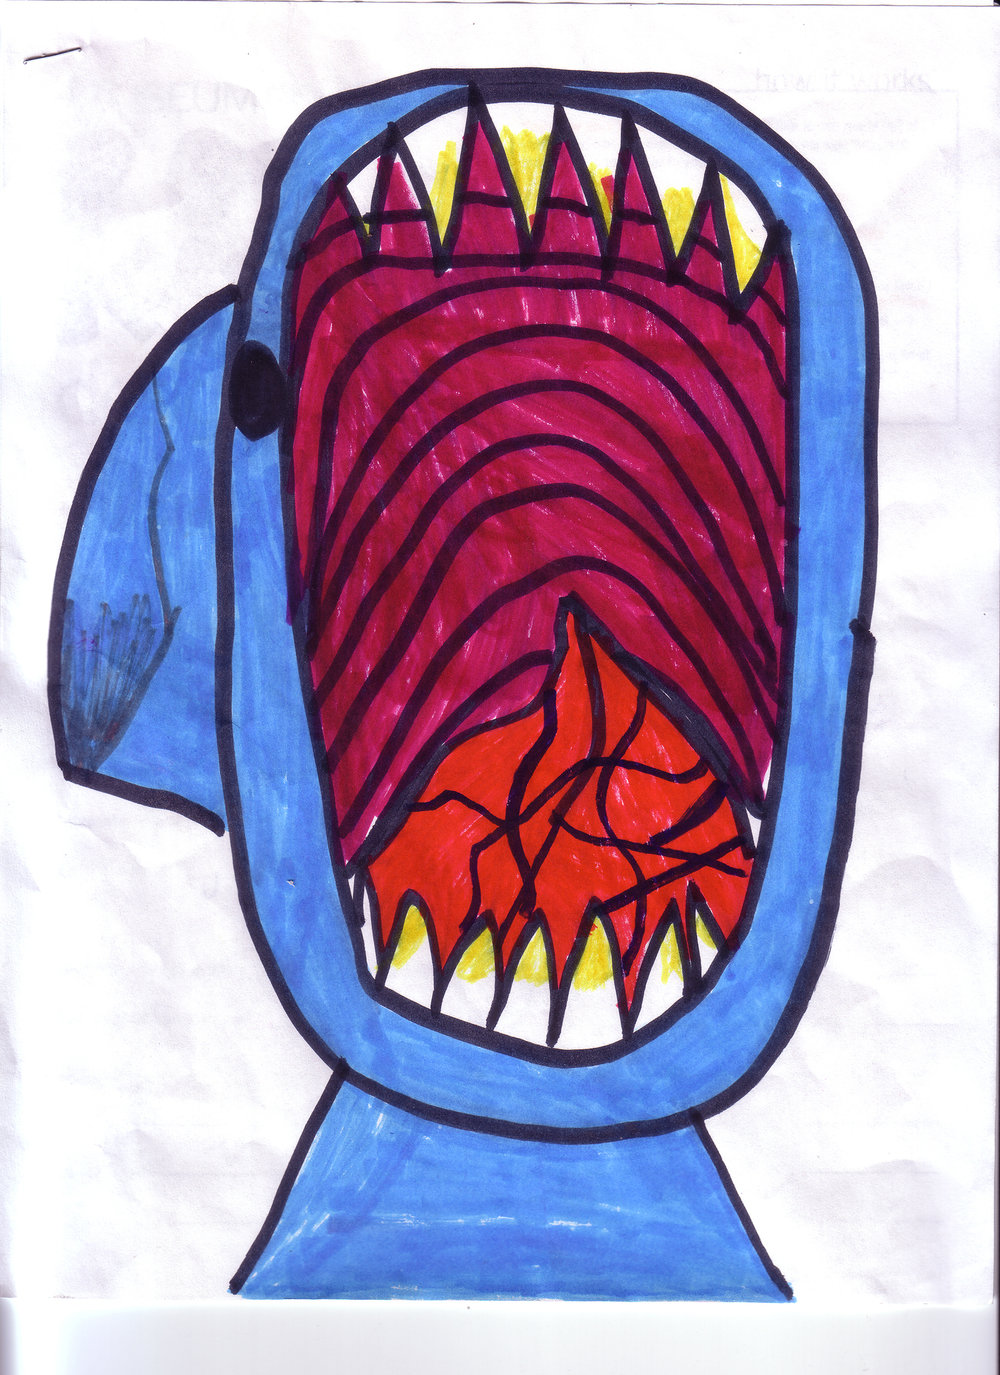 Erica Hankins (age 8).  Shark Attack!,  2007. Ink on paper; 11 x 8 1/2 in. Collection of Museum of Glass, Tacoma, Washington.   Shark Attack!  artist's statement:  It's scary!